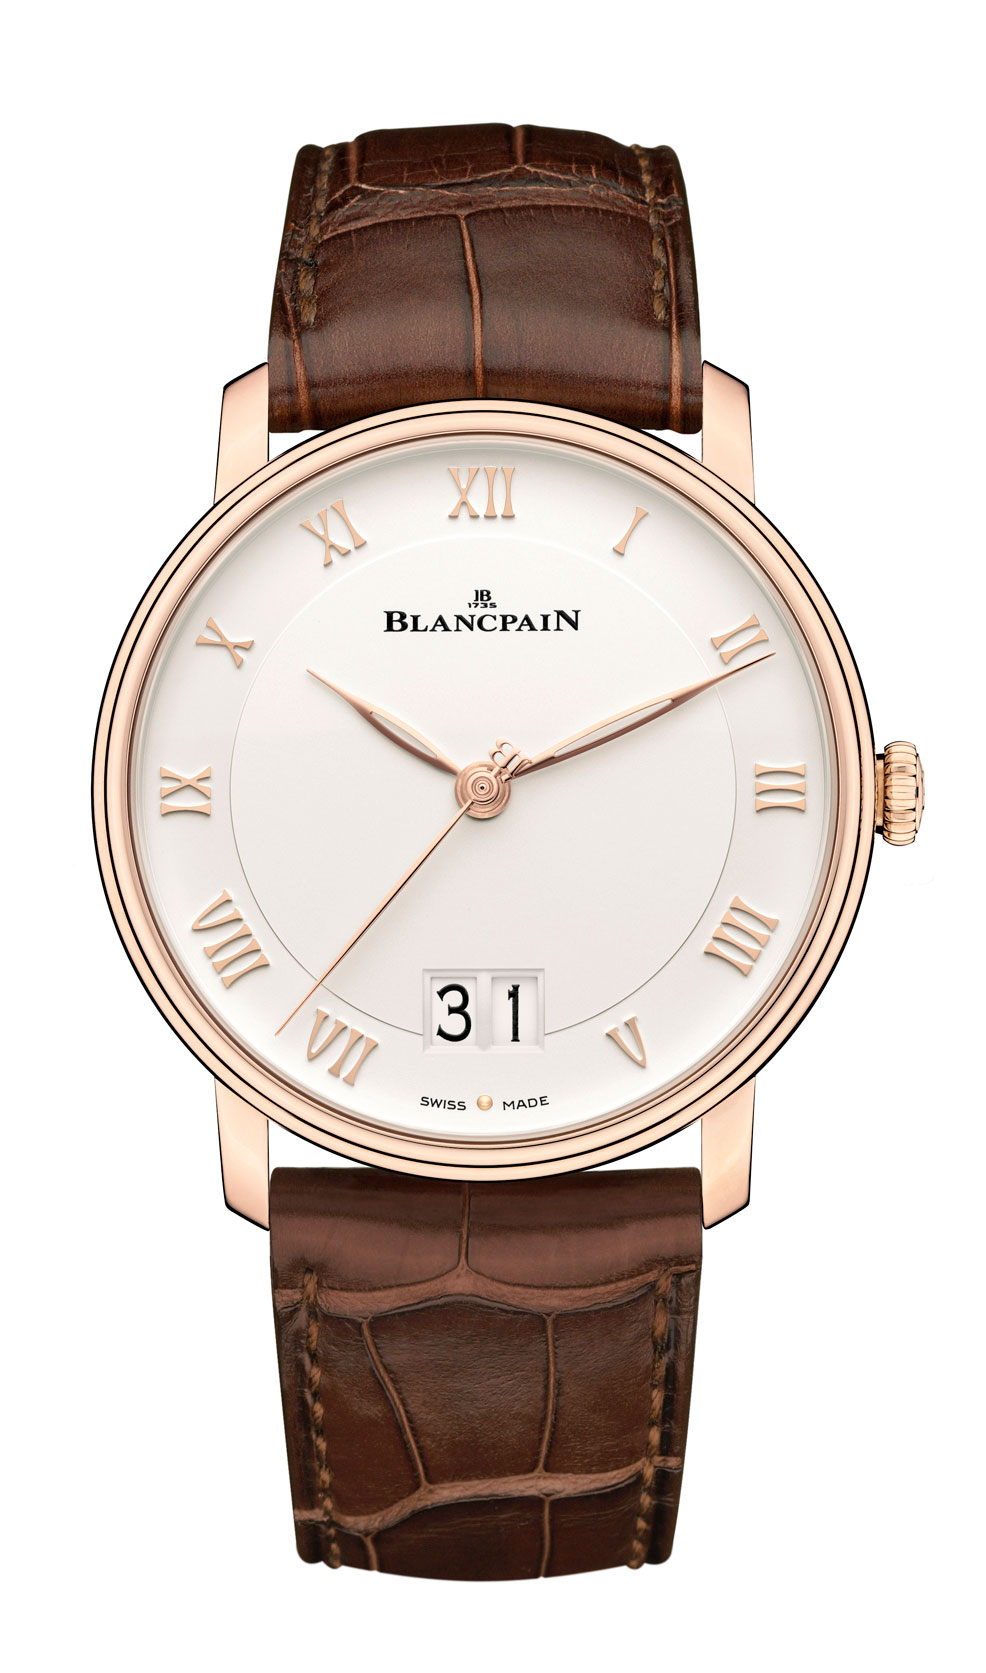 Blancpain Villeret Grand Date frontal